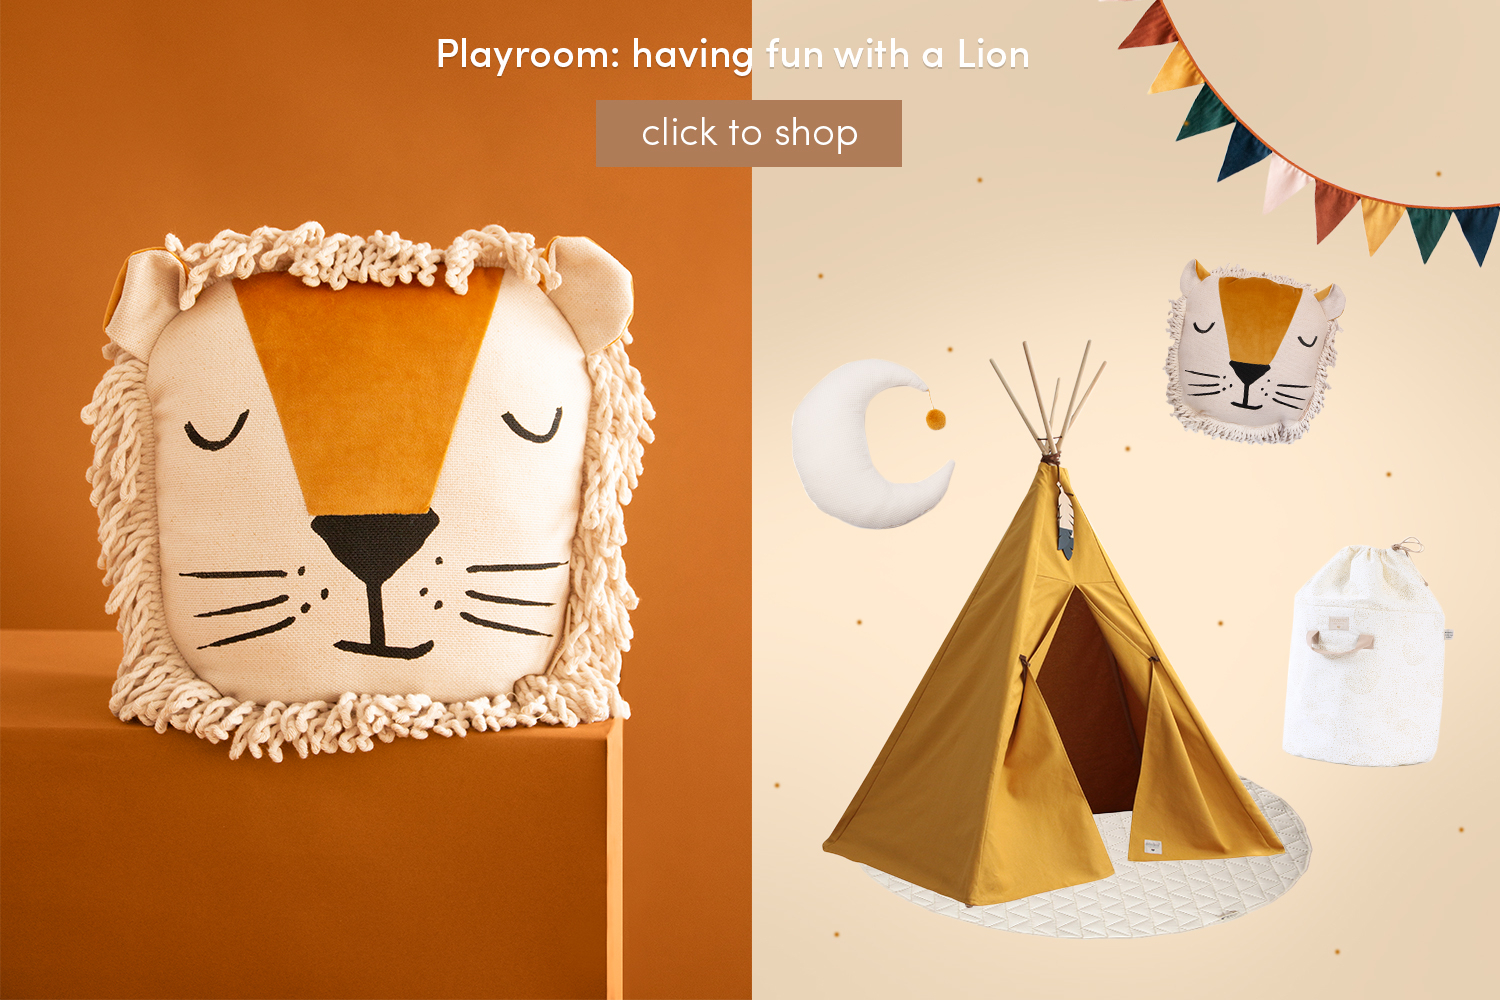 Playroom: Having fun with a Lion